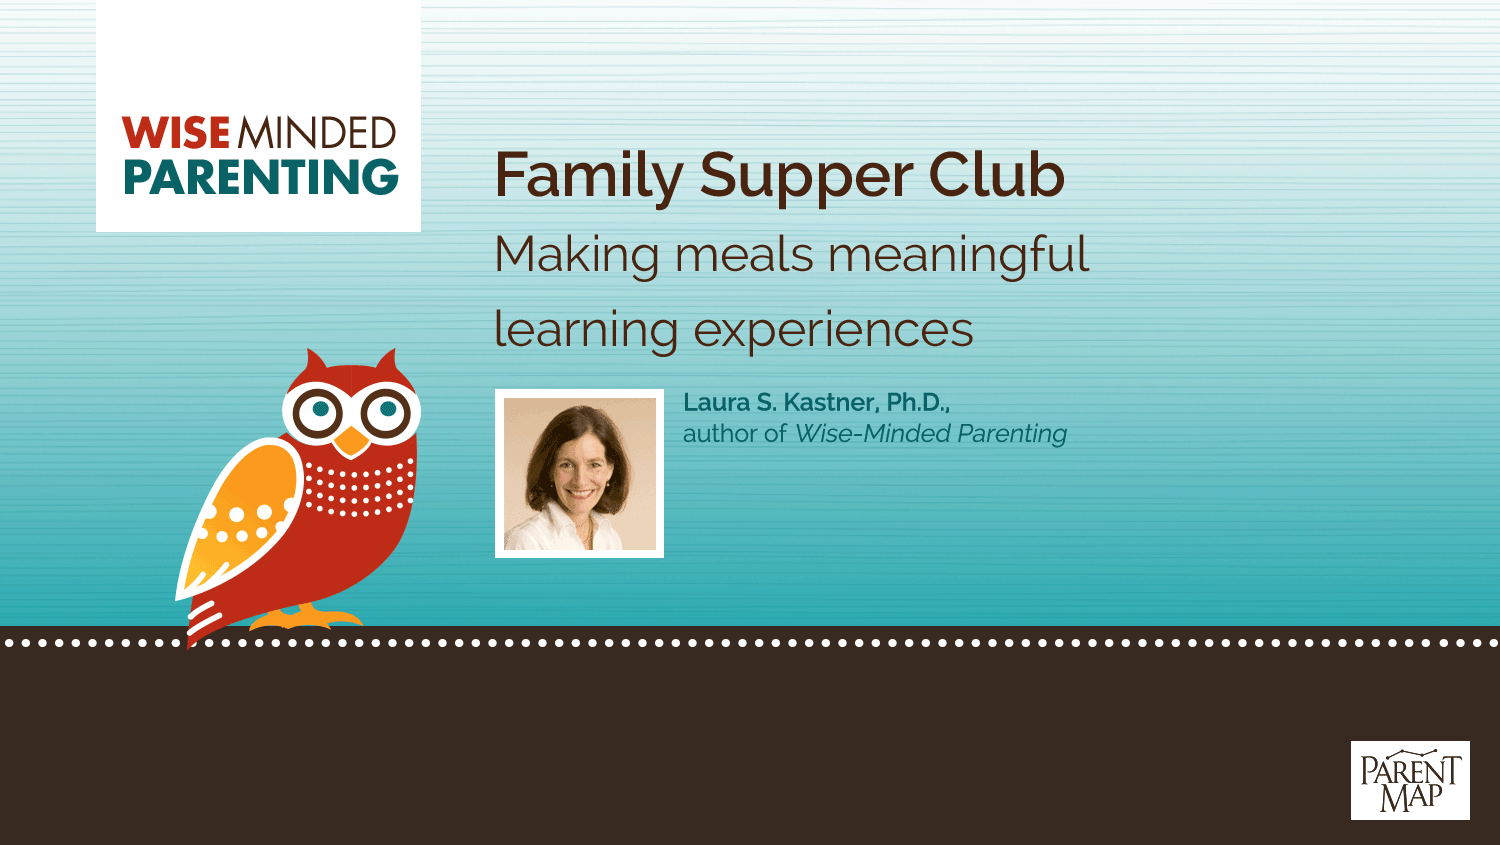 Family Supper Club